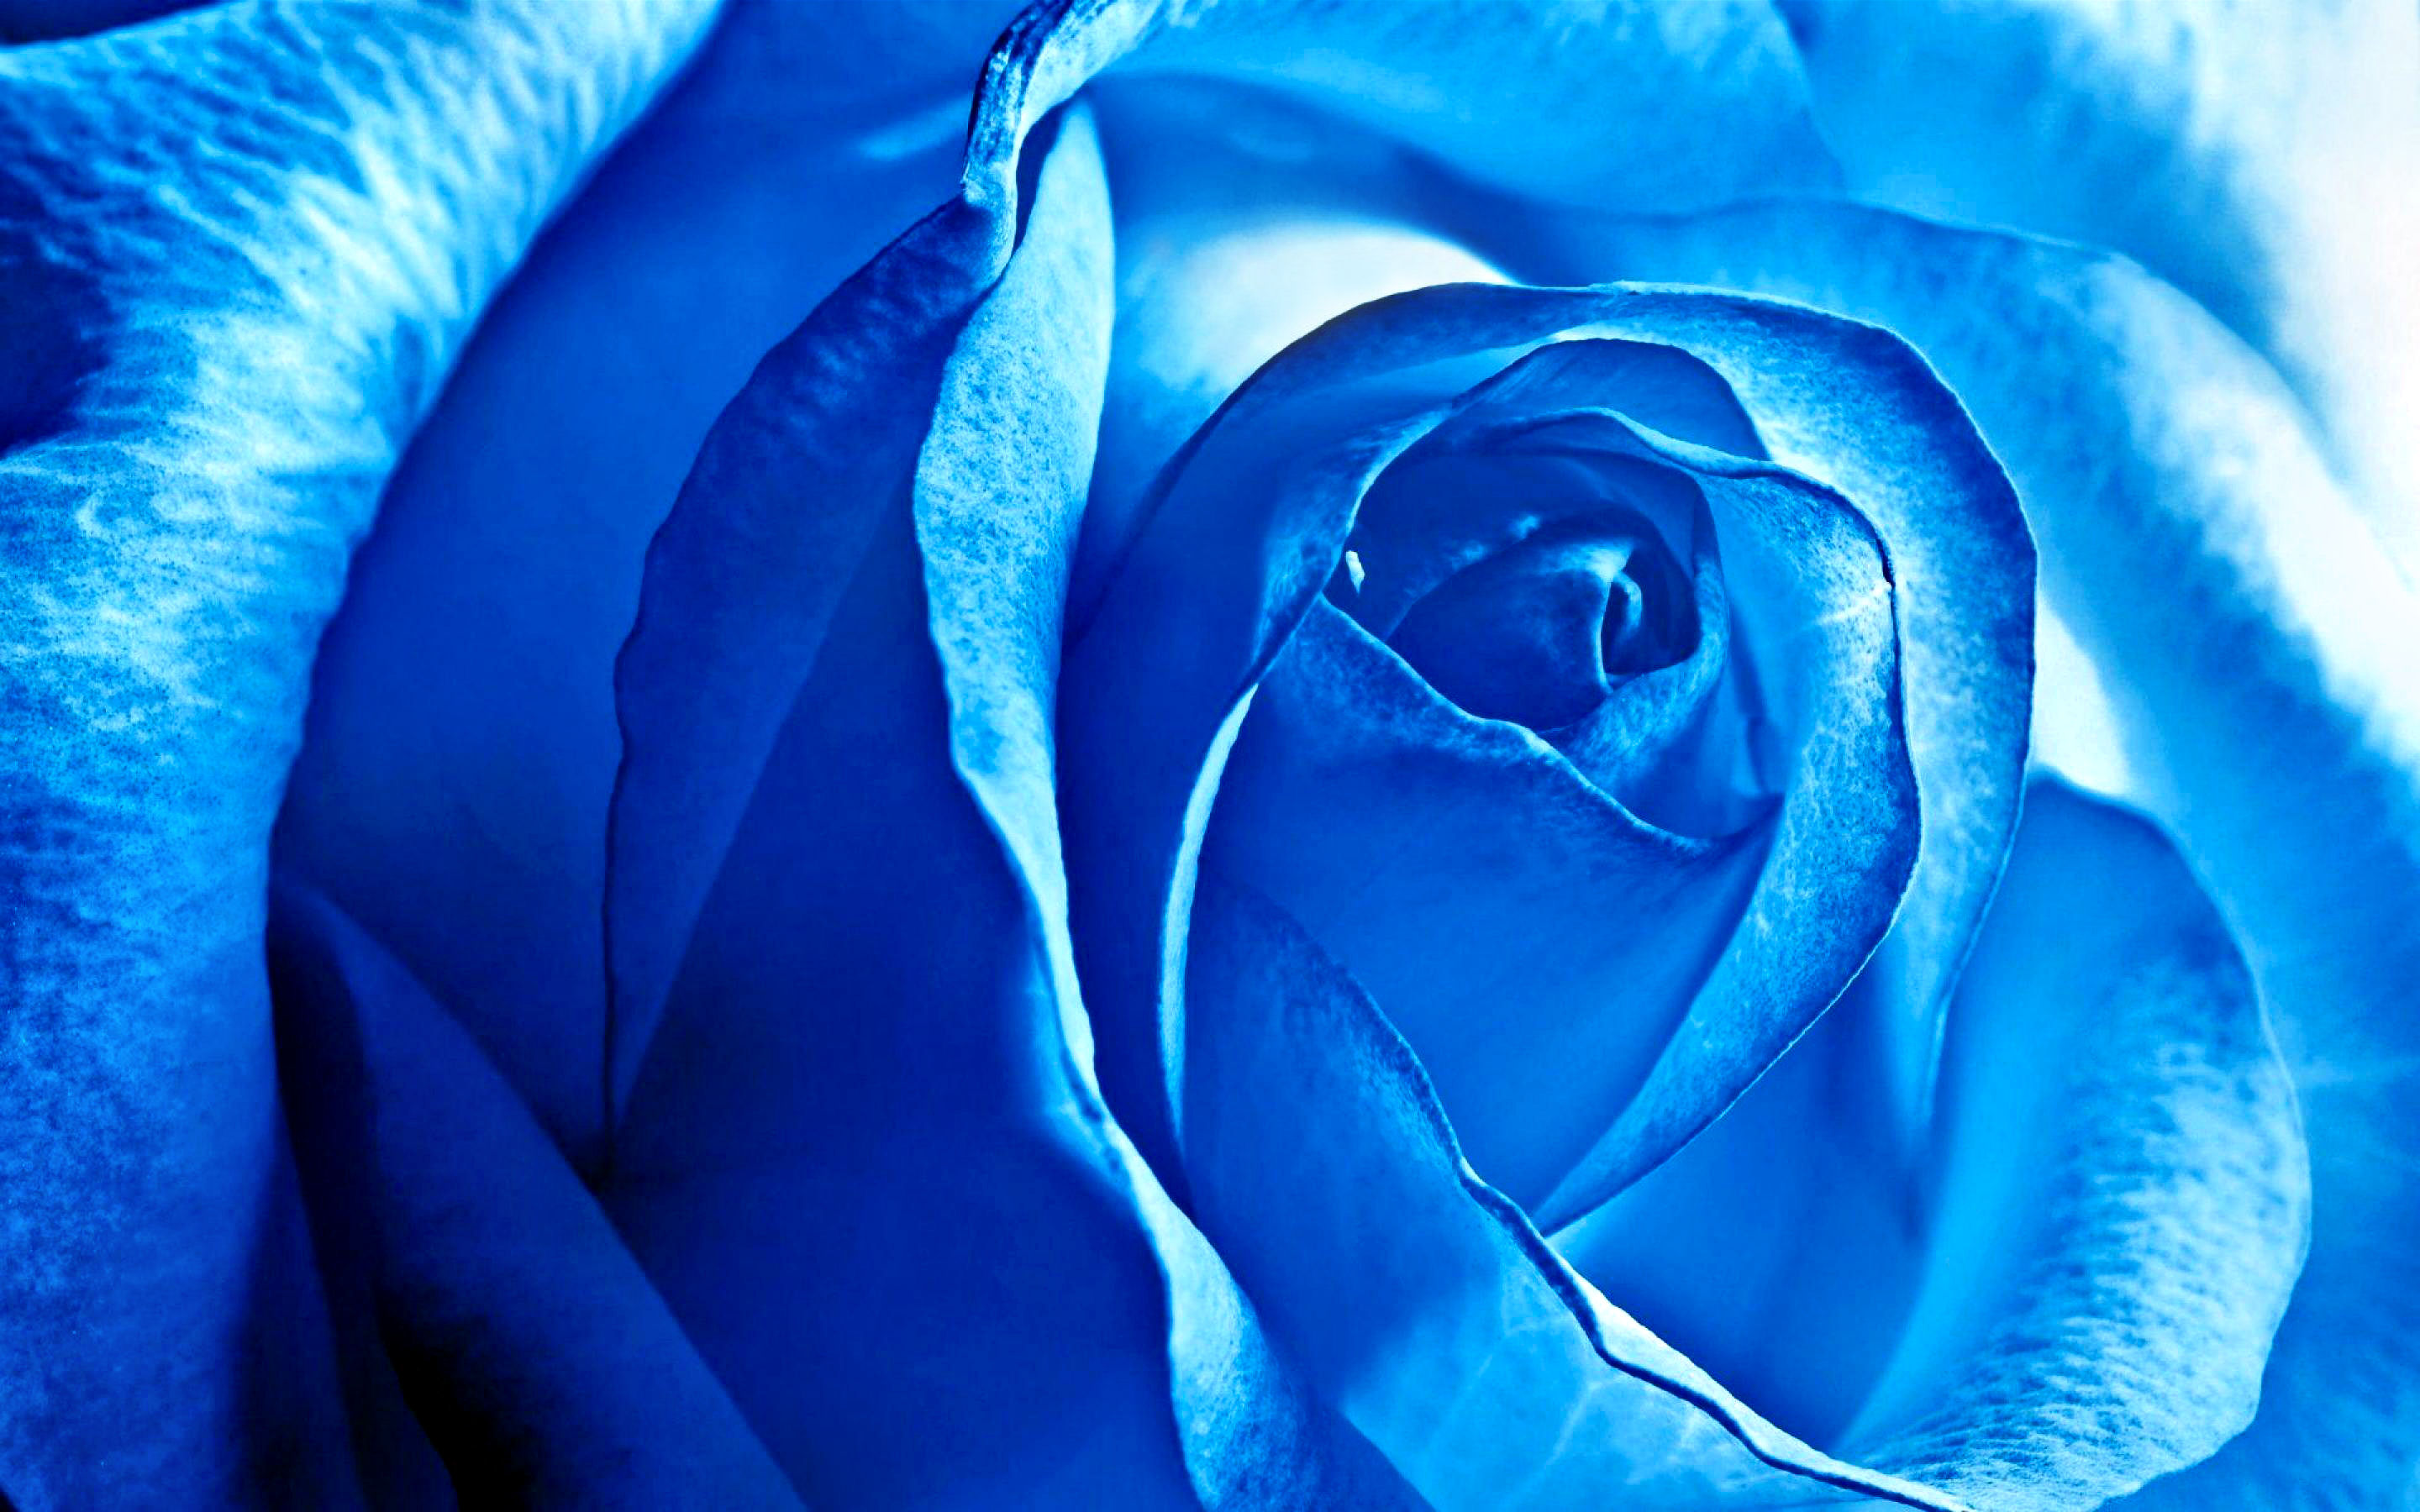 Hd wallpaper rose - Hd Wallpaper Background Id 324192 2880x1800 Earth Rose